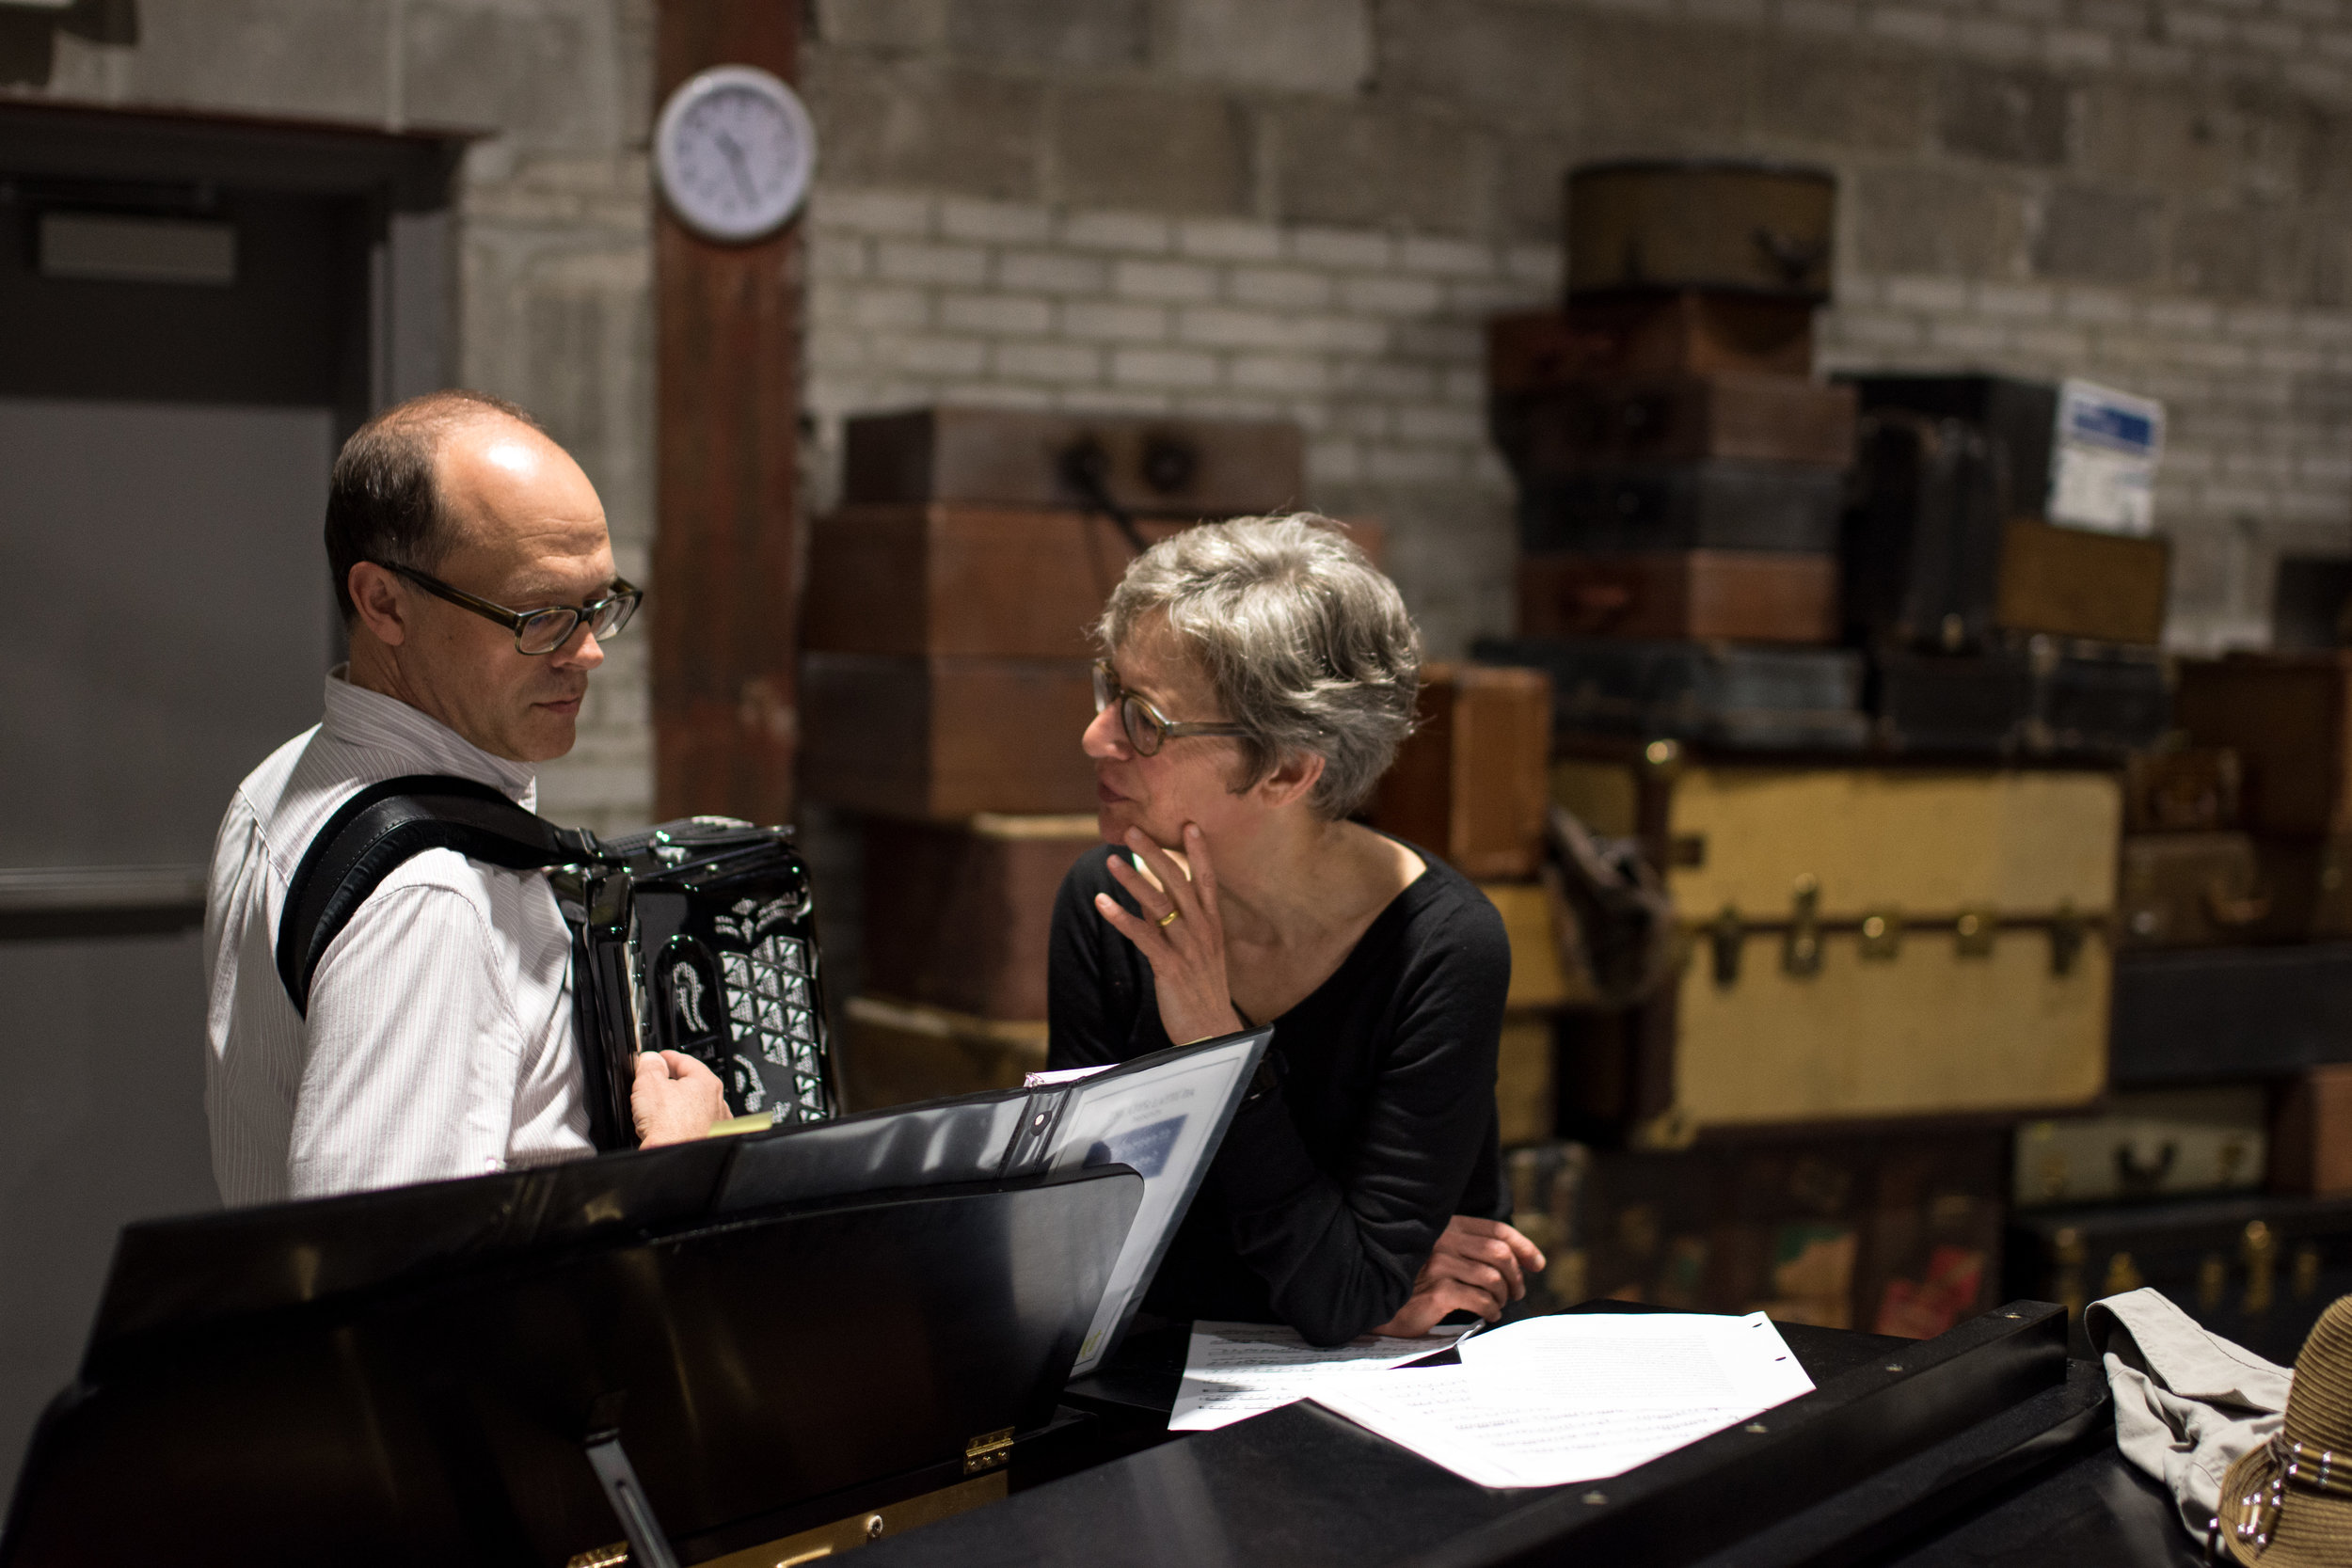 """Sally Wingert with musical director Dan Chouinard rehearsing """"Underneath the Lintel."""" Photo by Sally Wingert stars in the one-person play """"Underneath the Lintel,"""" showing at Theater Latté Da, May 30-July 1,featuring new music by Frank London. Photo by Emilee Elofson."""